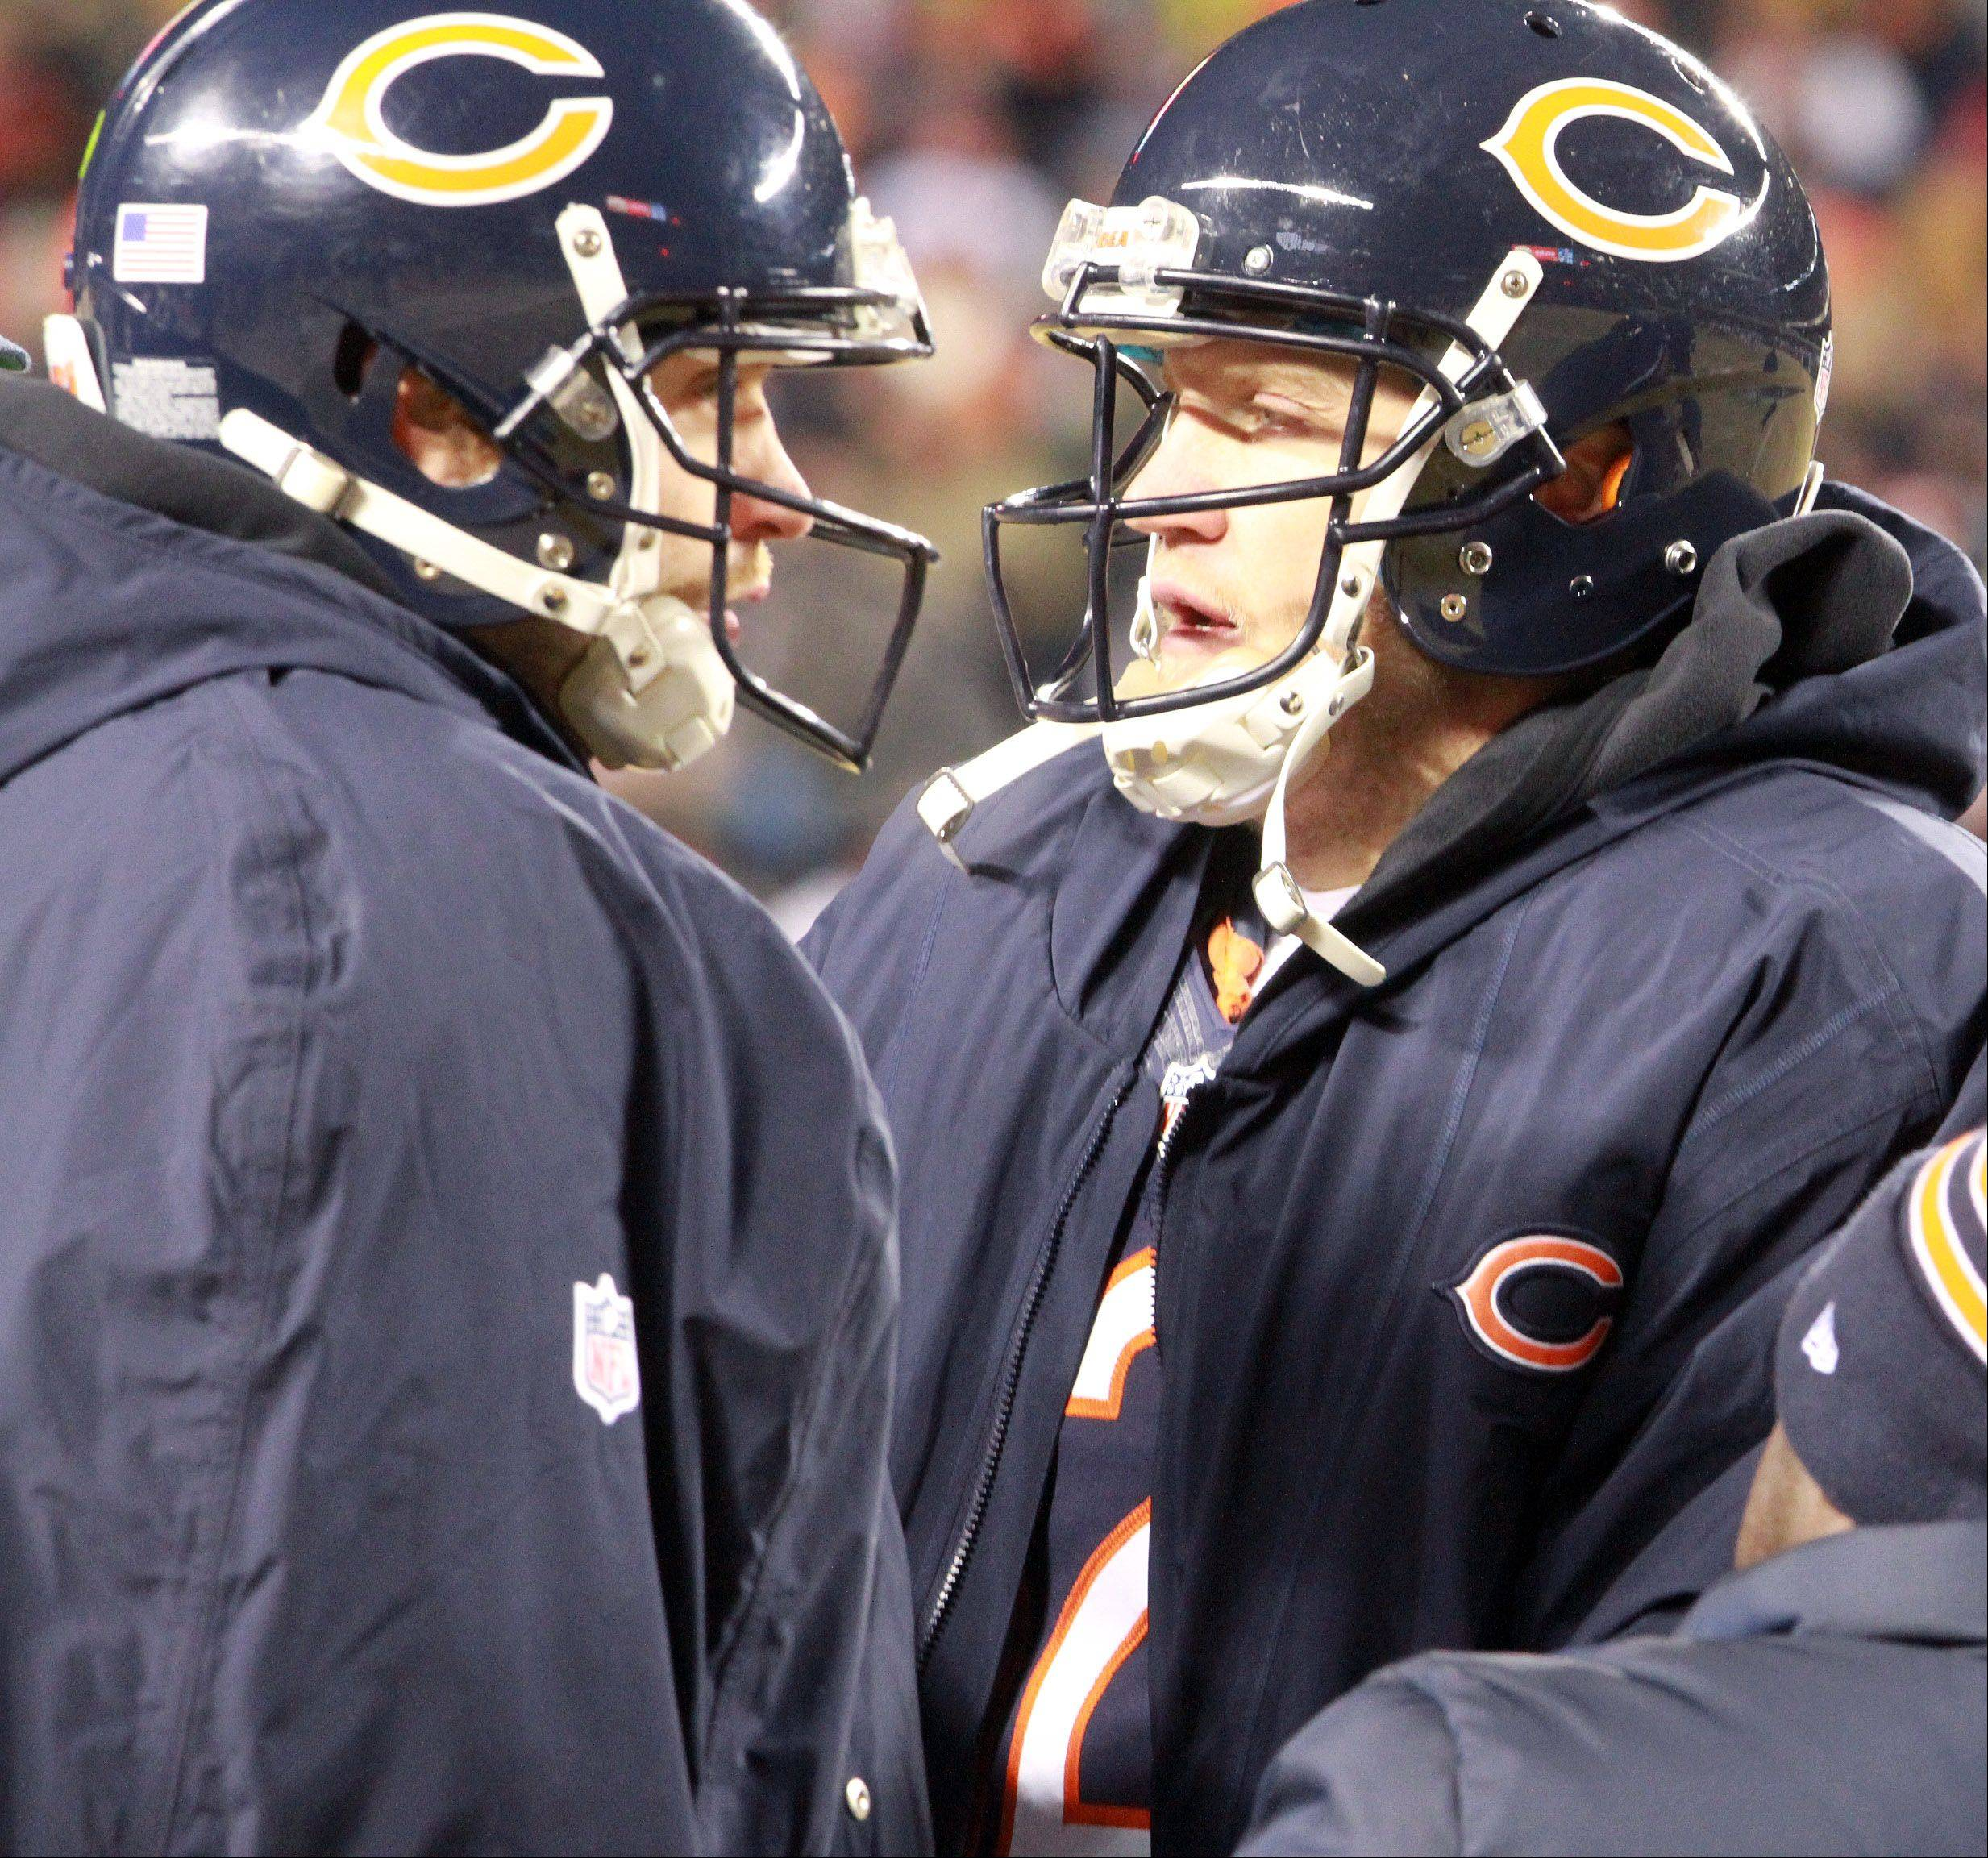 Chicago Bears quarterback Jay Cutler, left, has signed a 7-year deal to stay with the Bears, GM Phil Emery announced Thursday. Backup QB Josh McCown, right, is free agent.